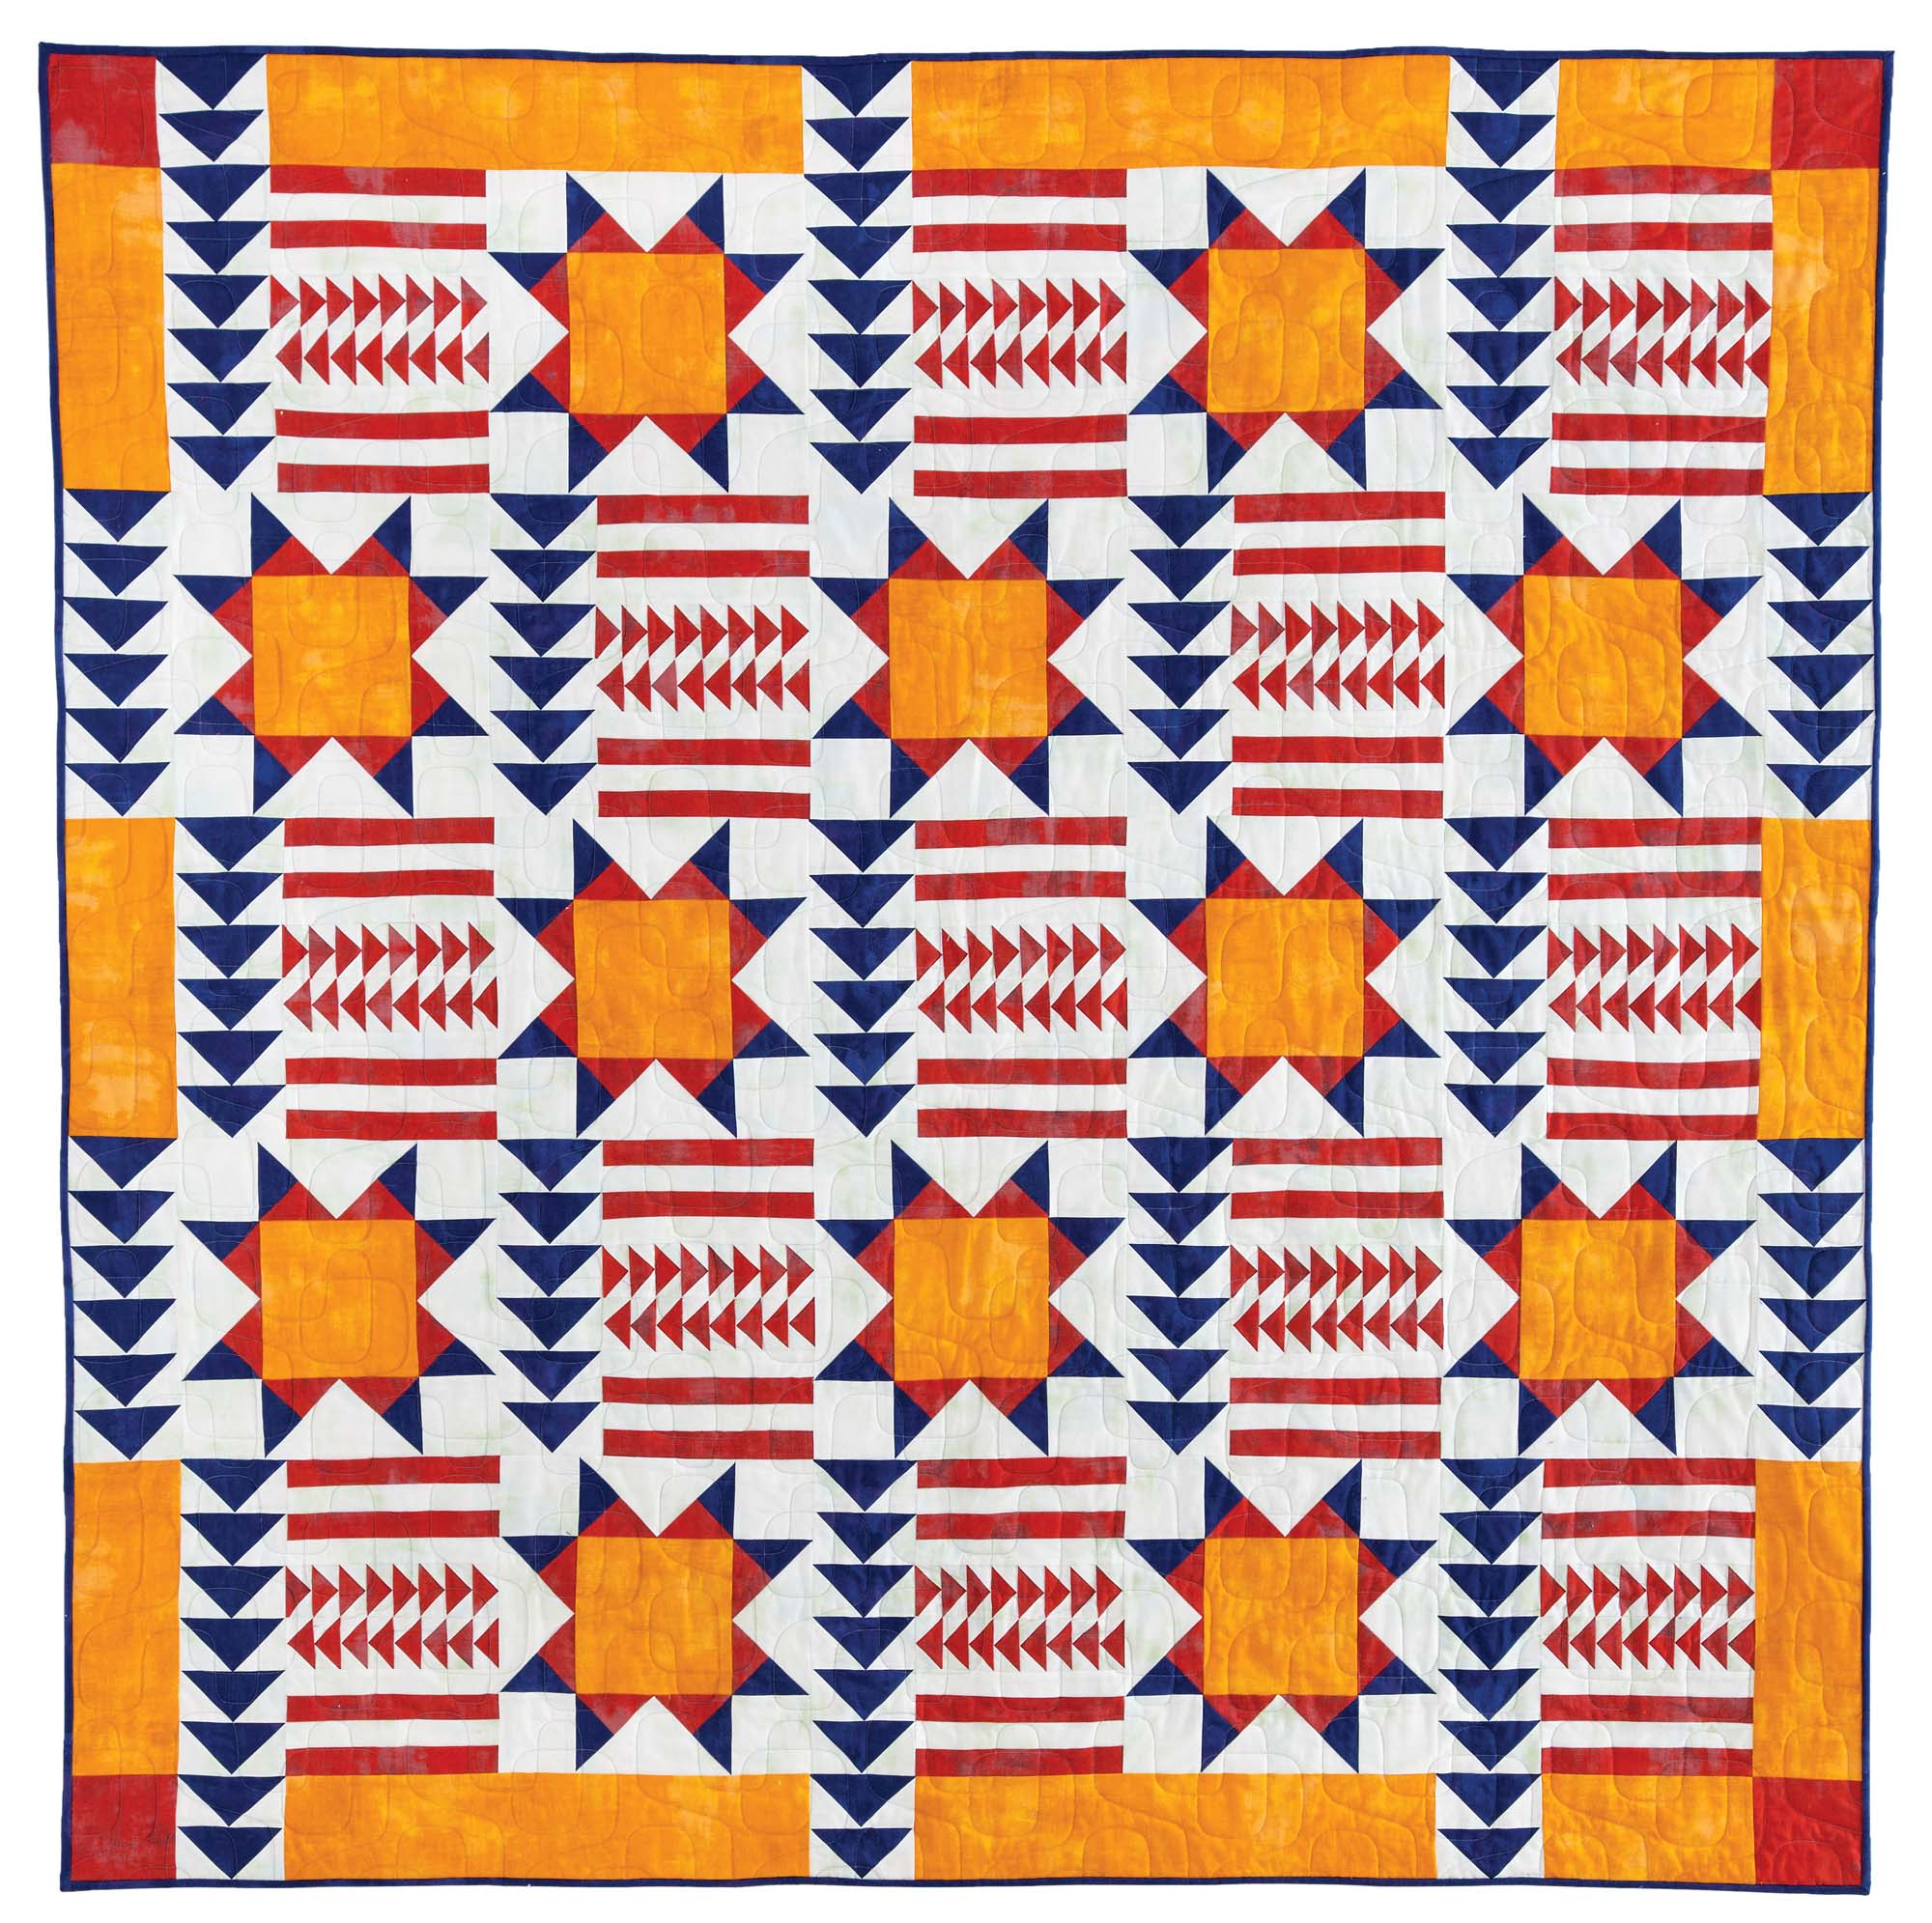 quilt-parade-of-stars-flat